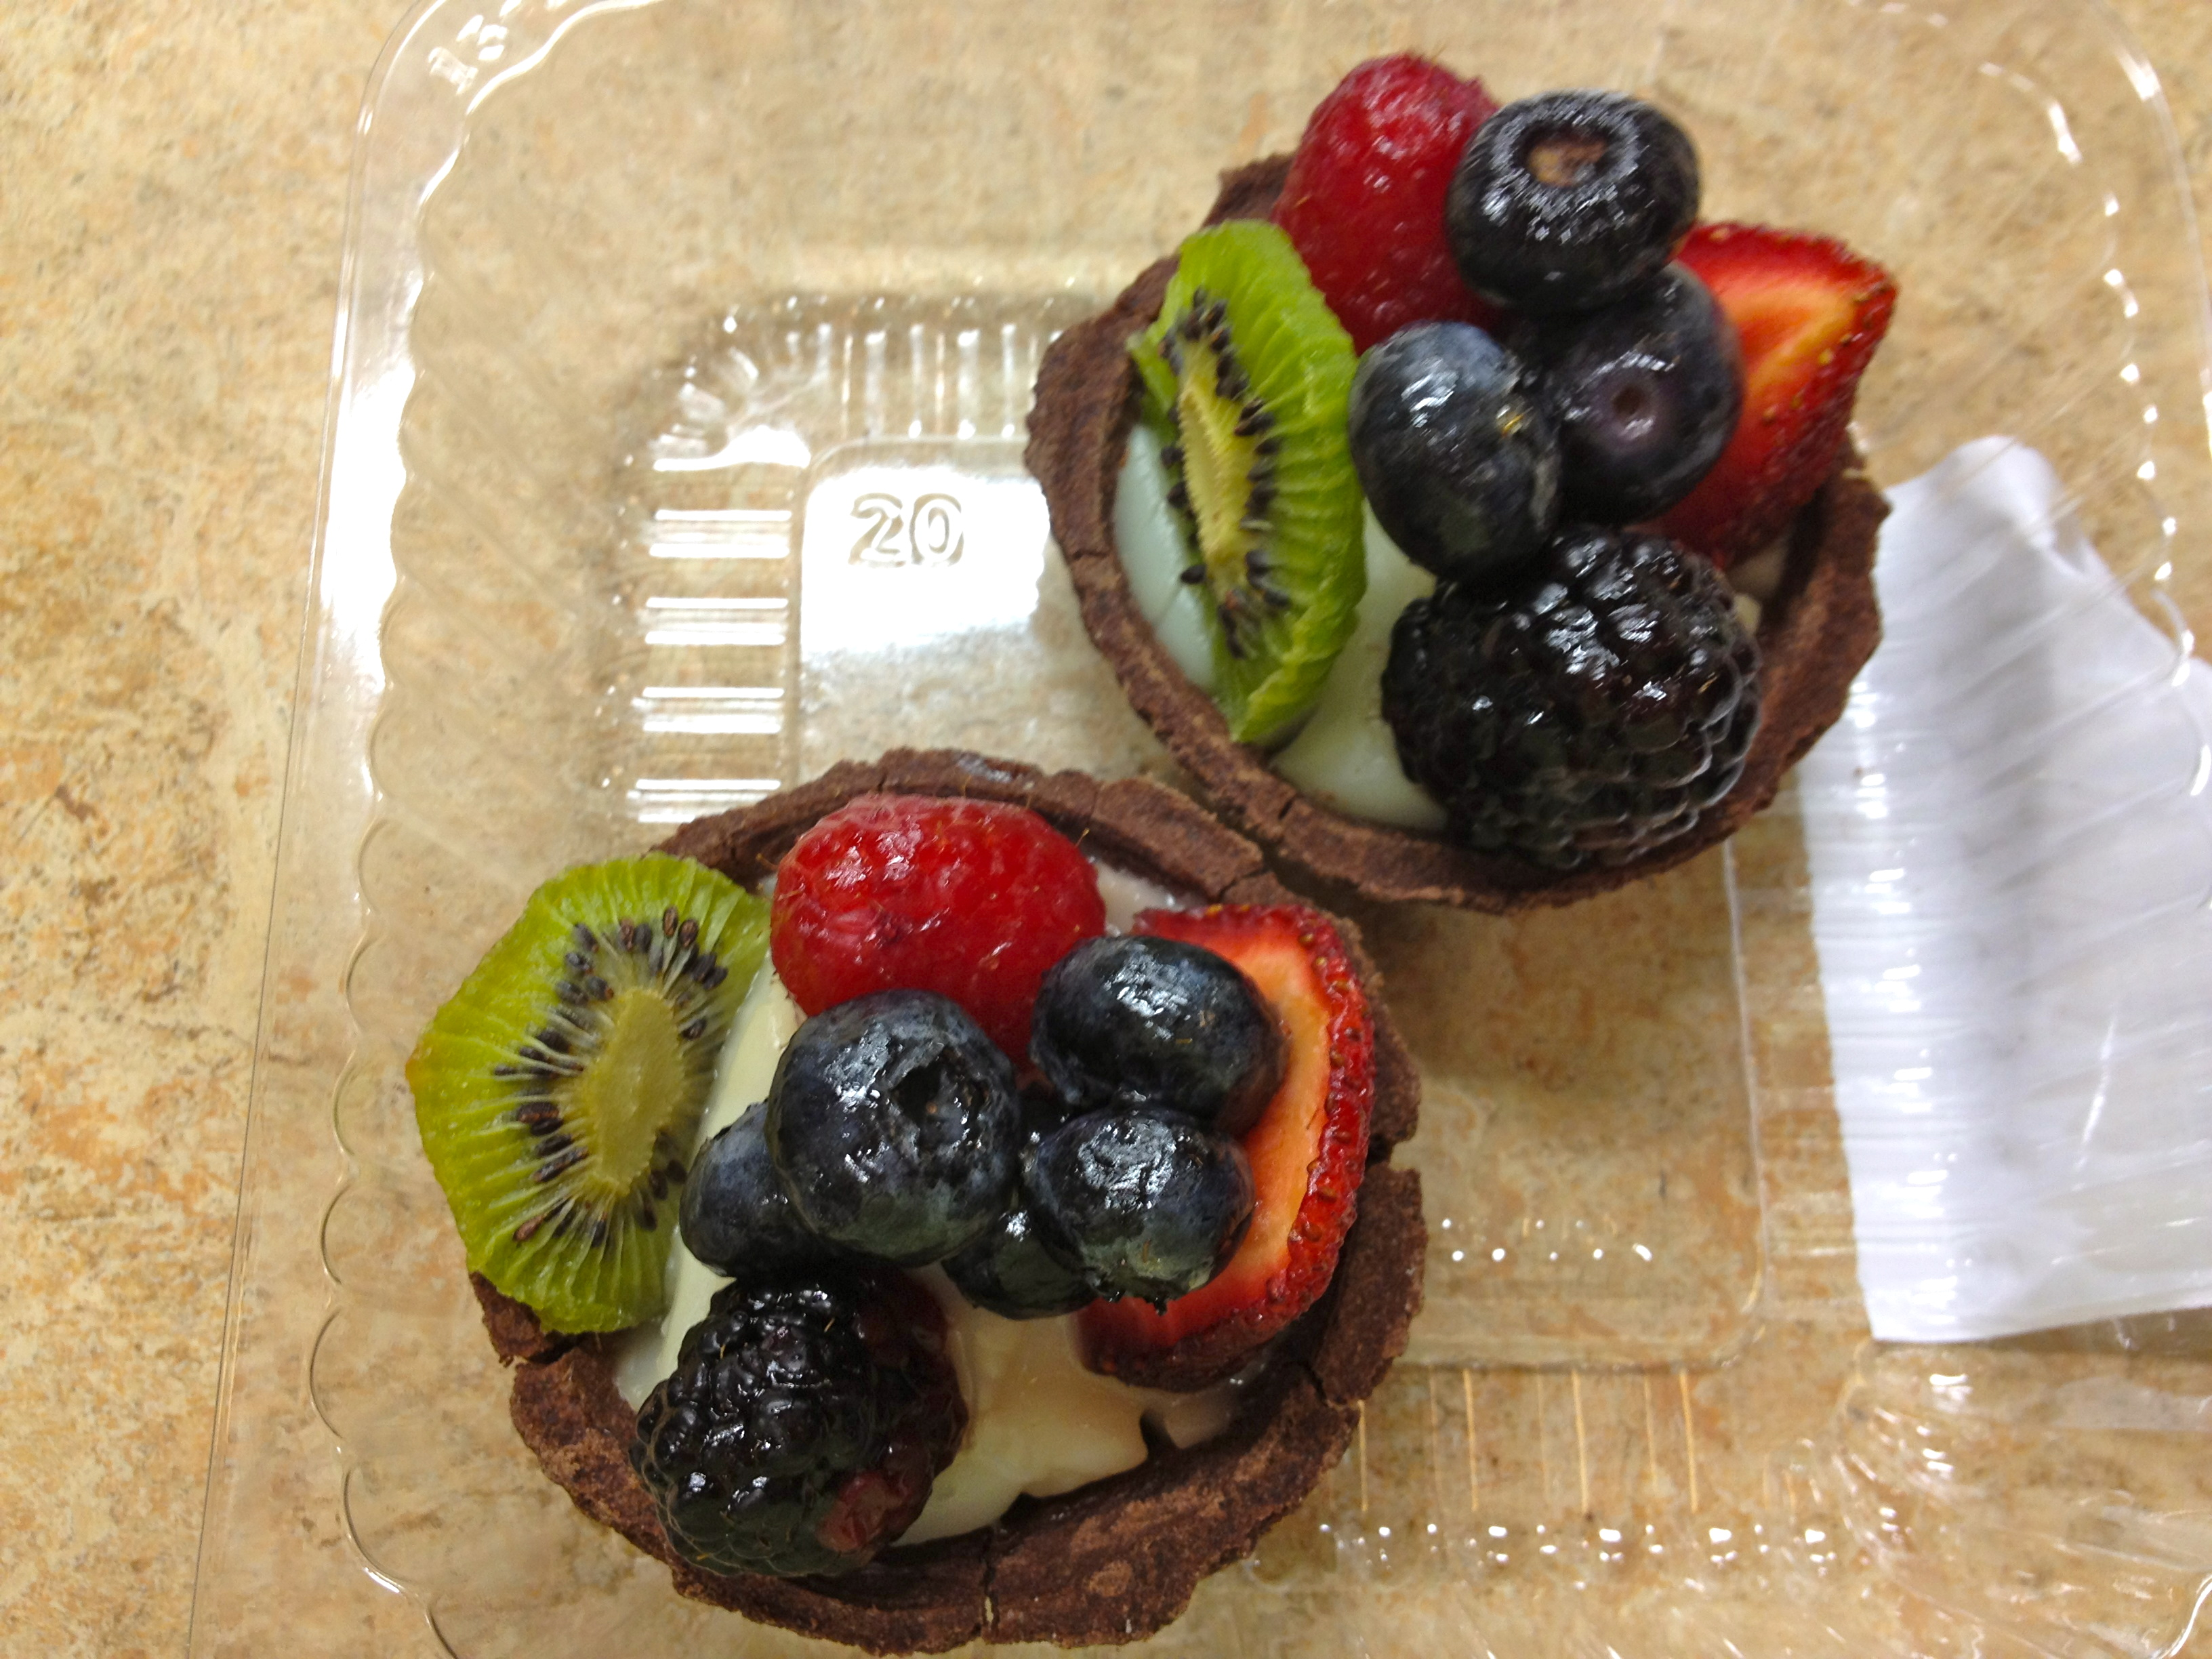 Whole Foods Fruit and Chcolate tart